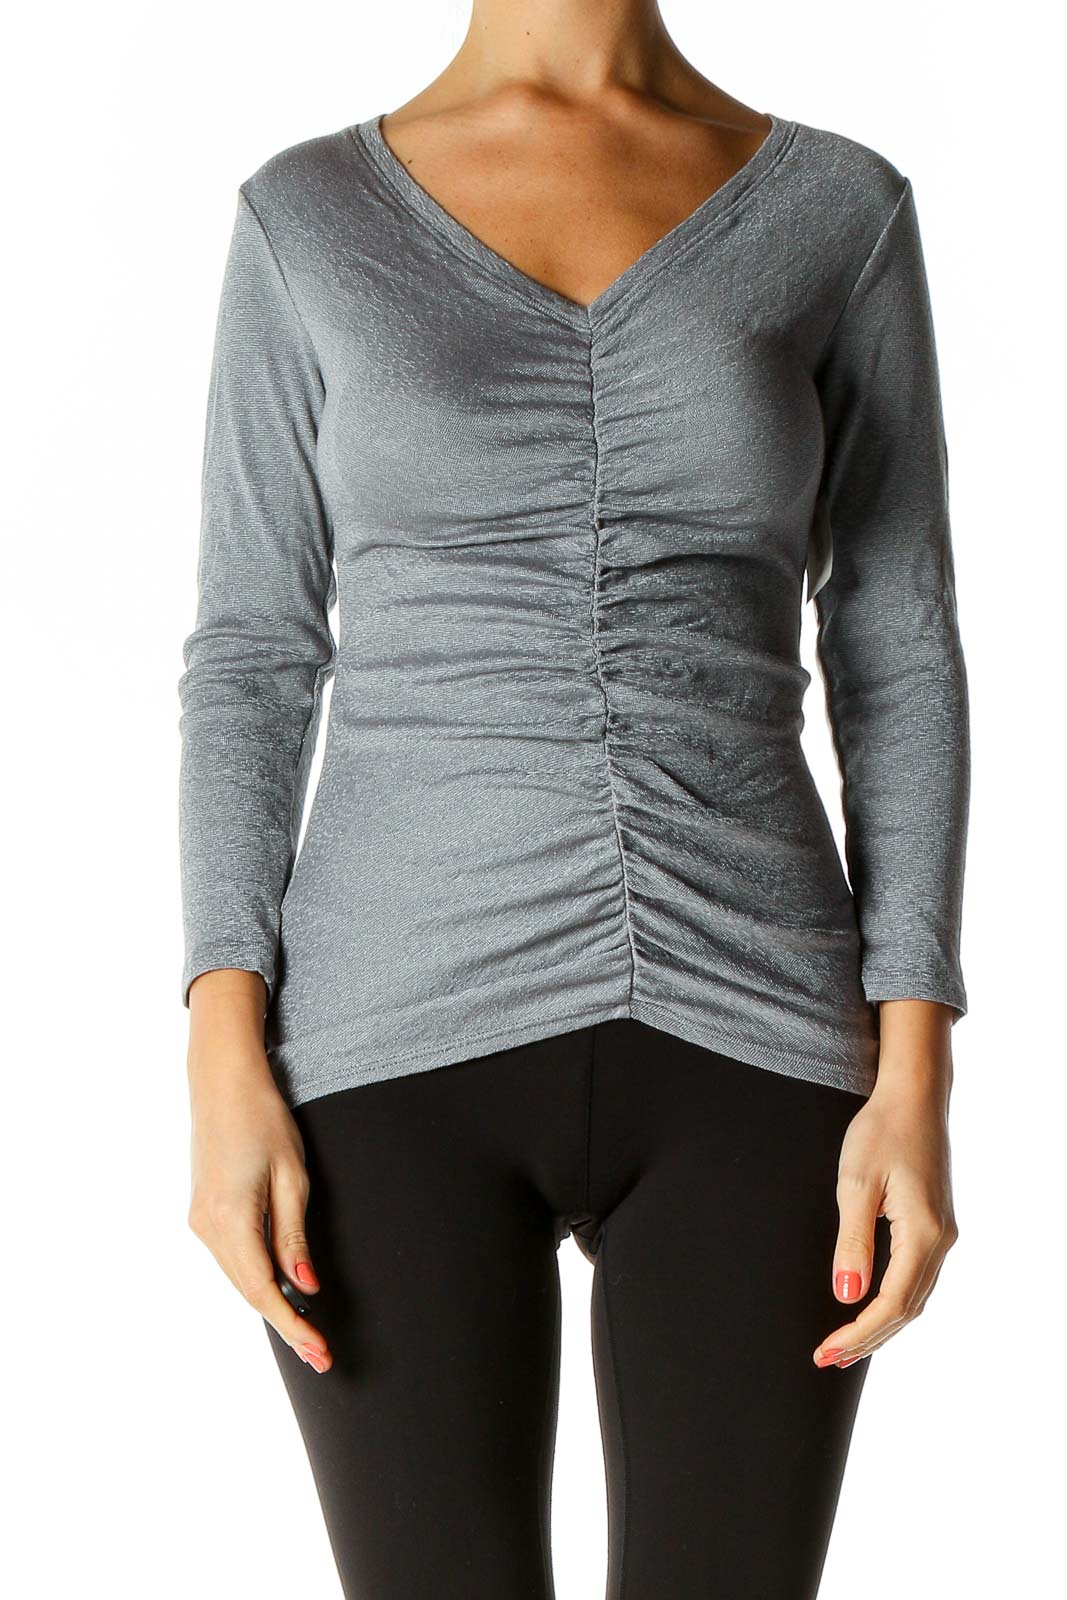 Gray Solid All Day Wear Top Front